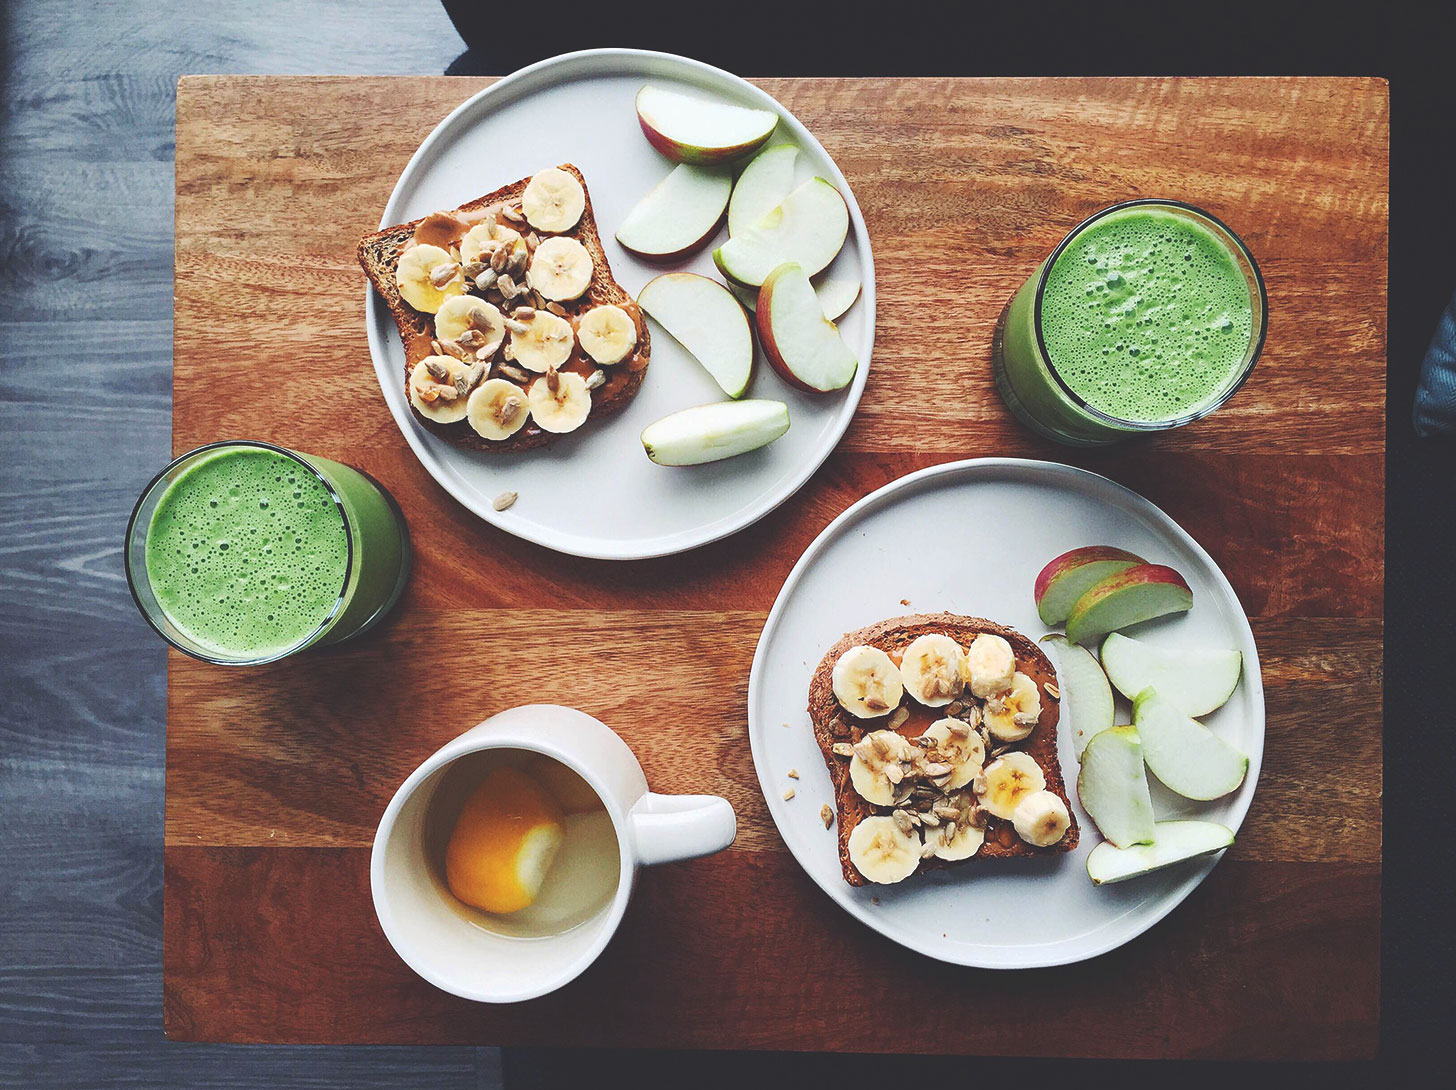 Photo showing green smoothies, nut butter toast, and sliced apples for breakfast